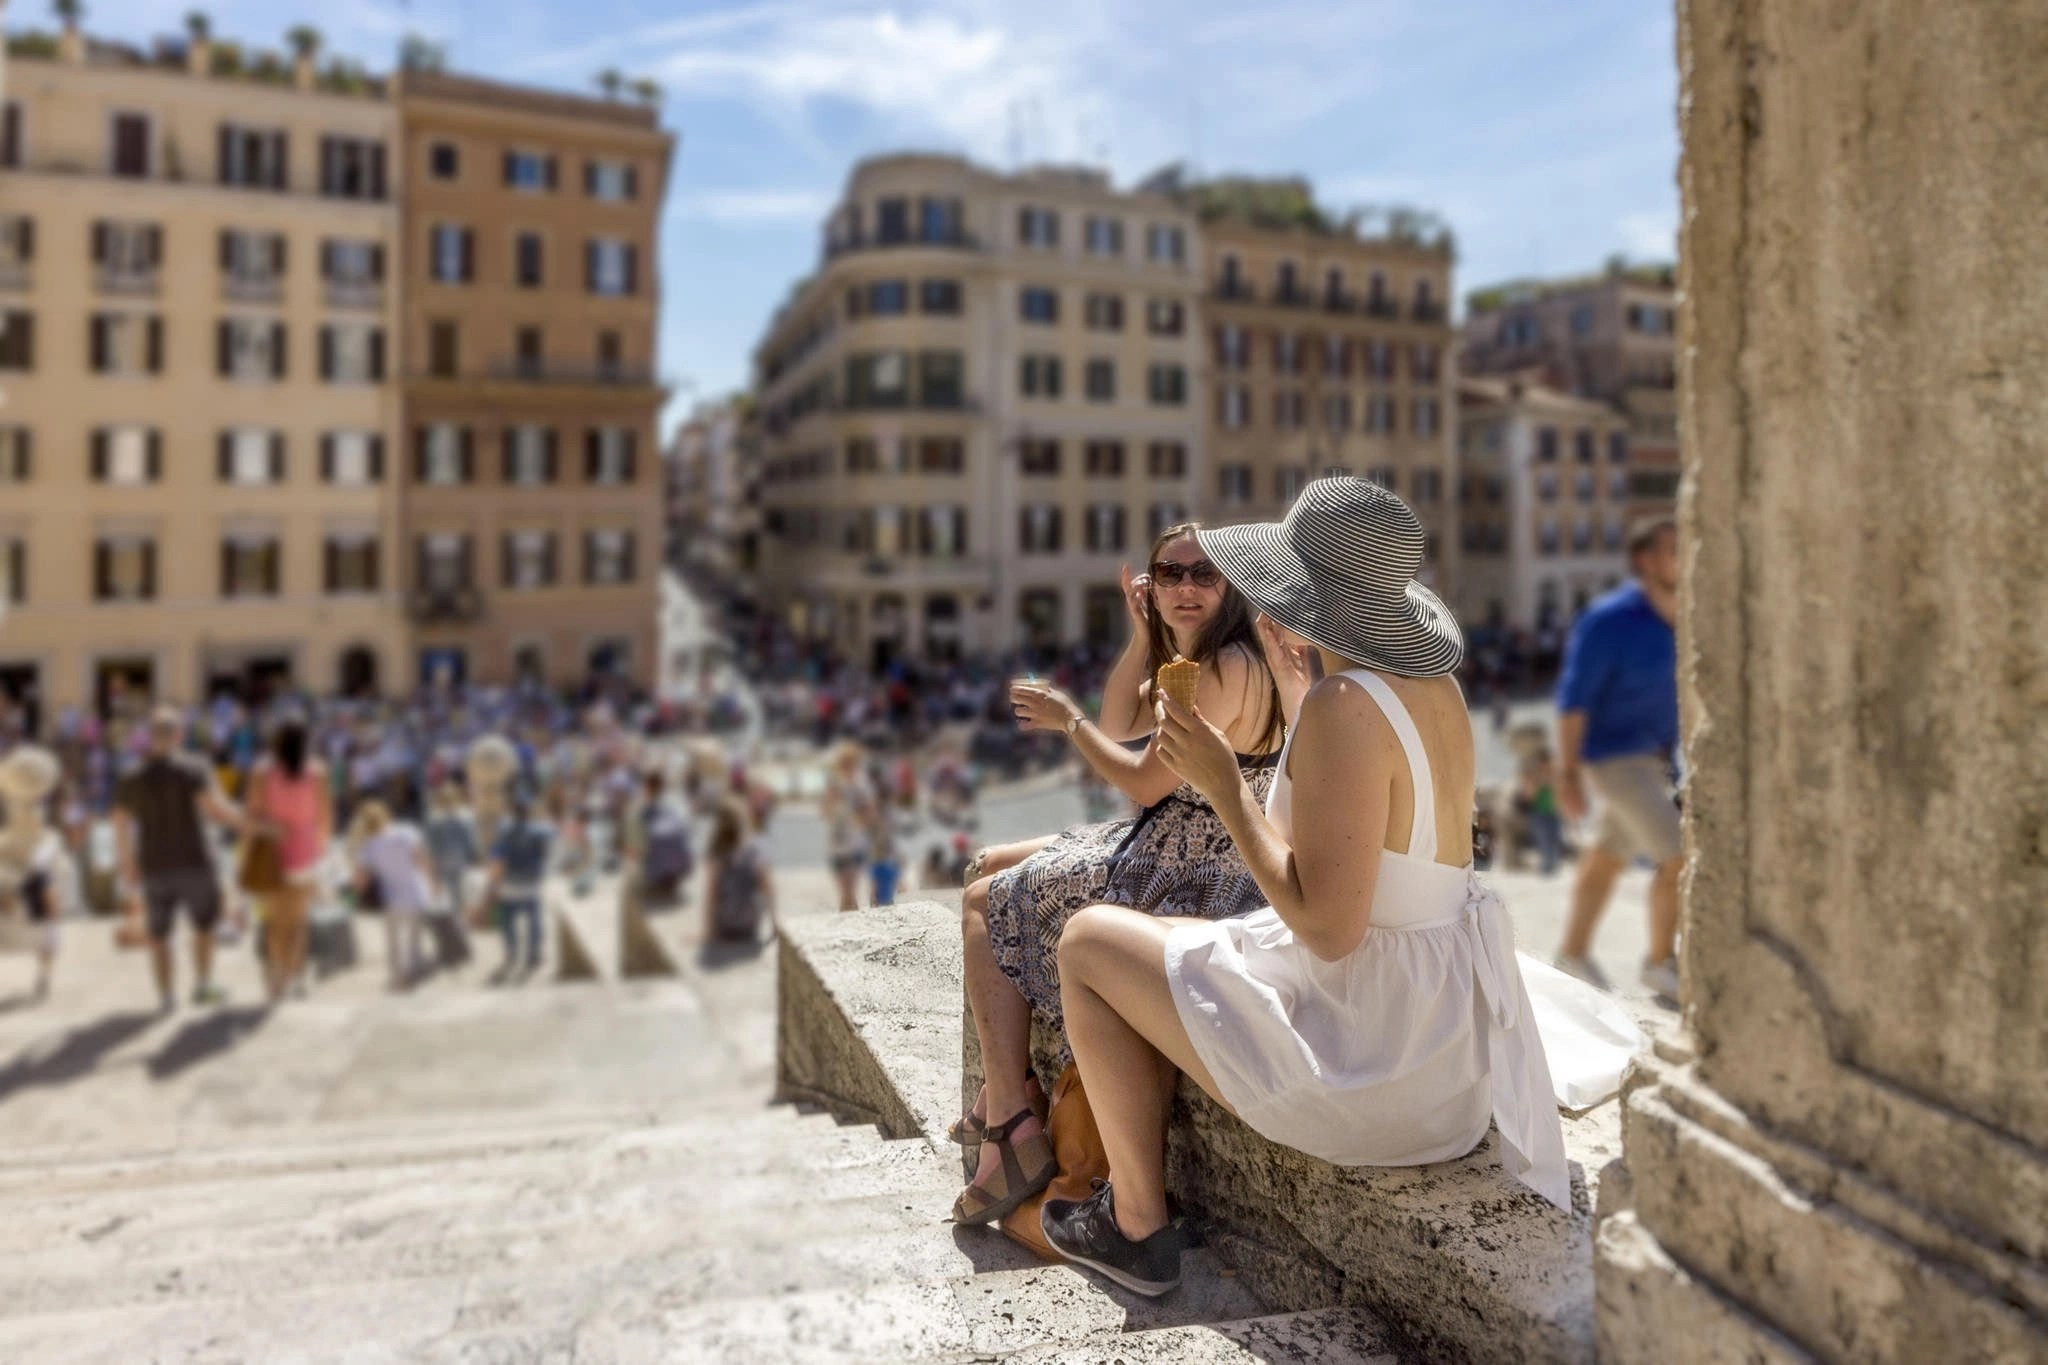 Two women sitting on the Spanish Steps in Spagna, Rome with buildings in the background and people walking in the plaza.